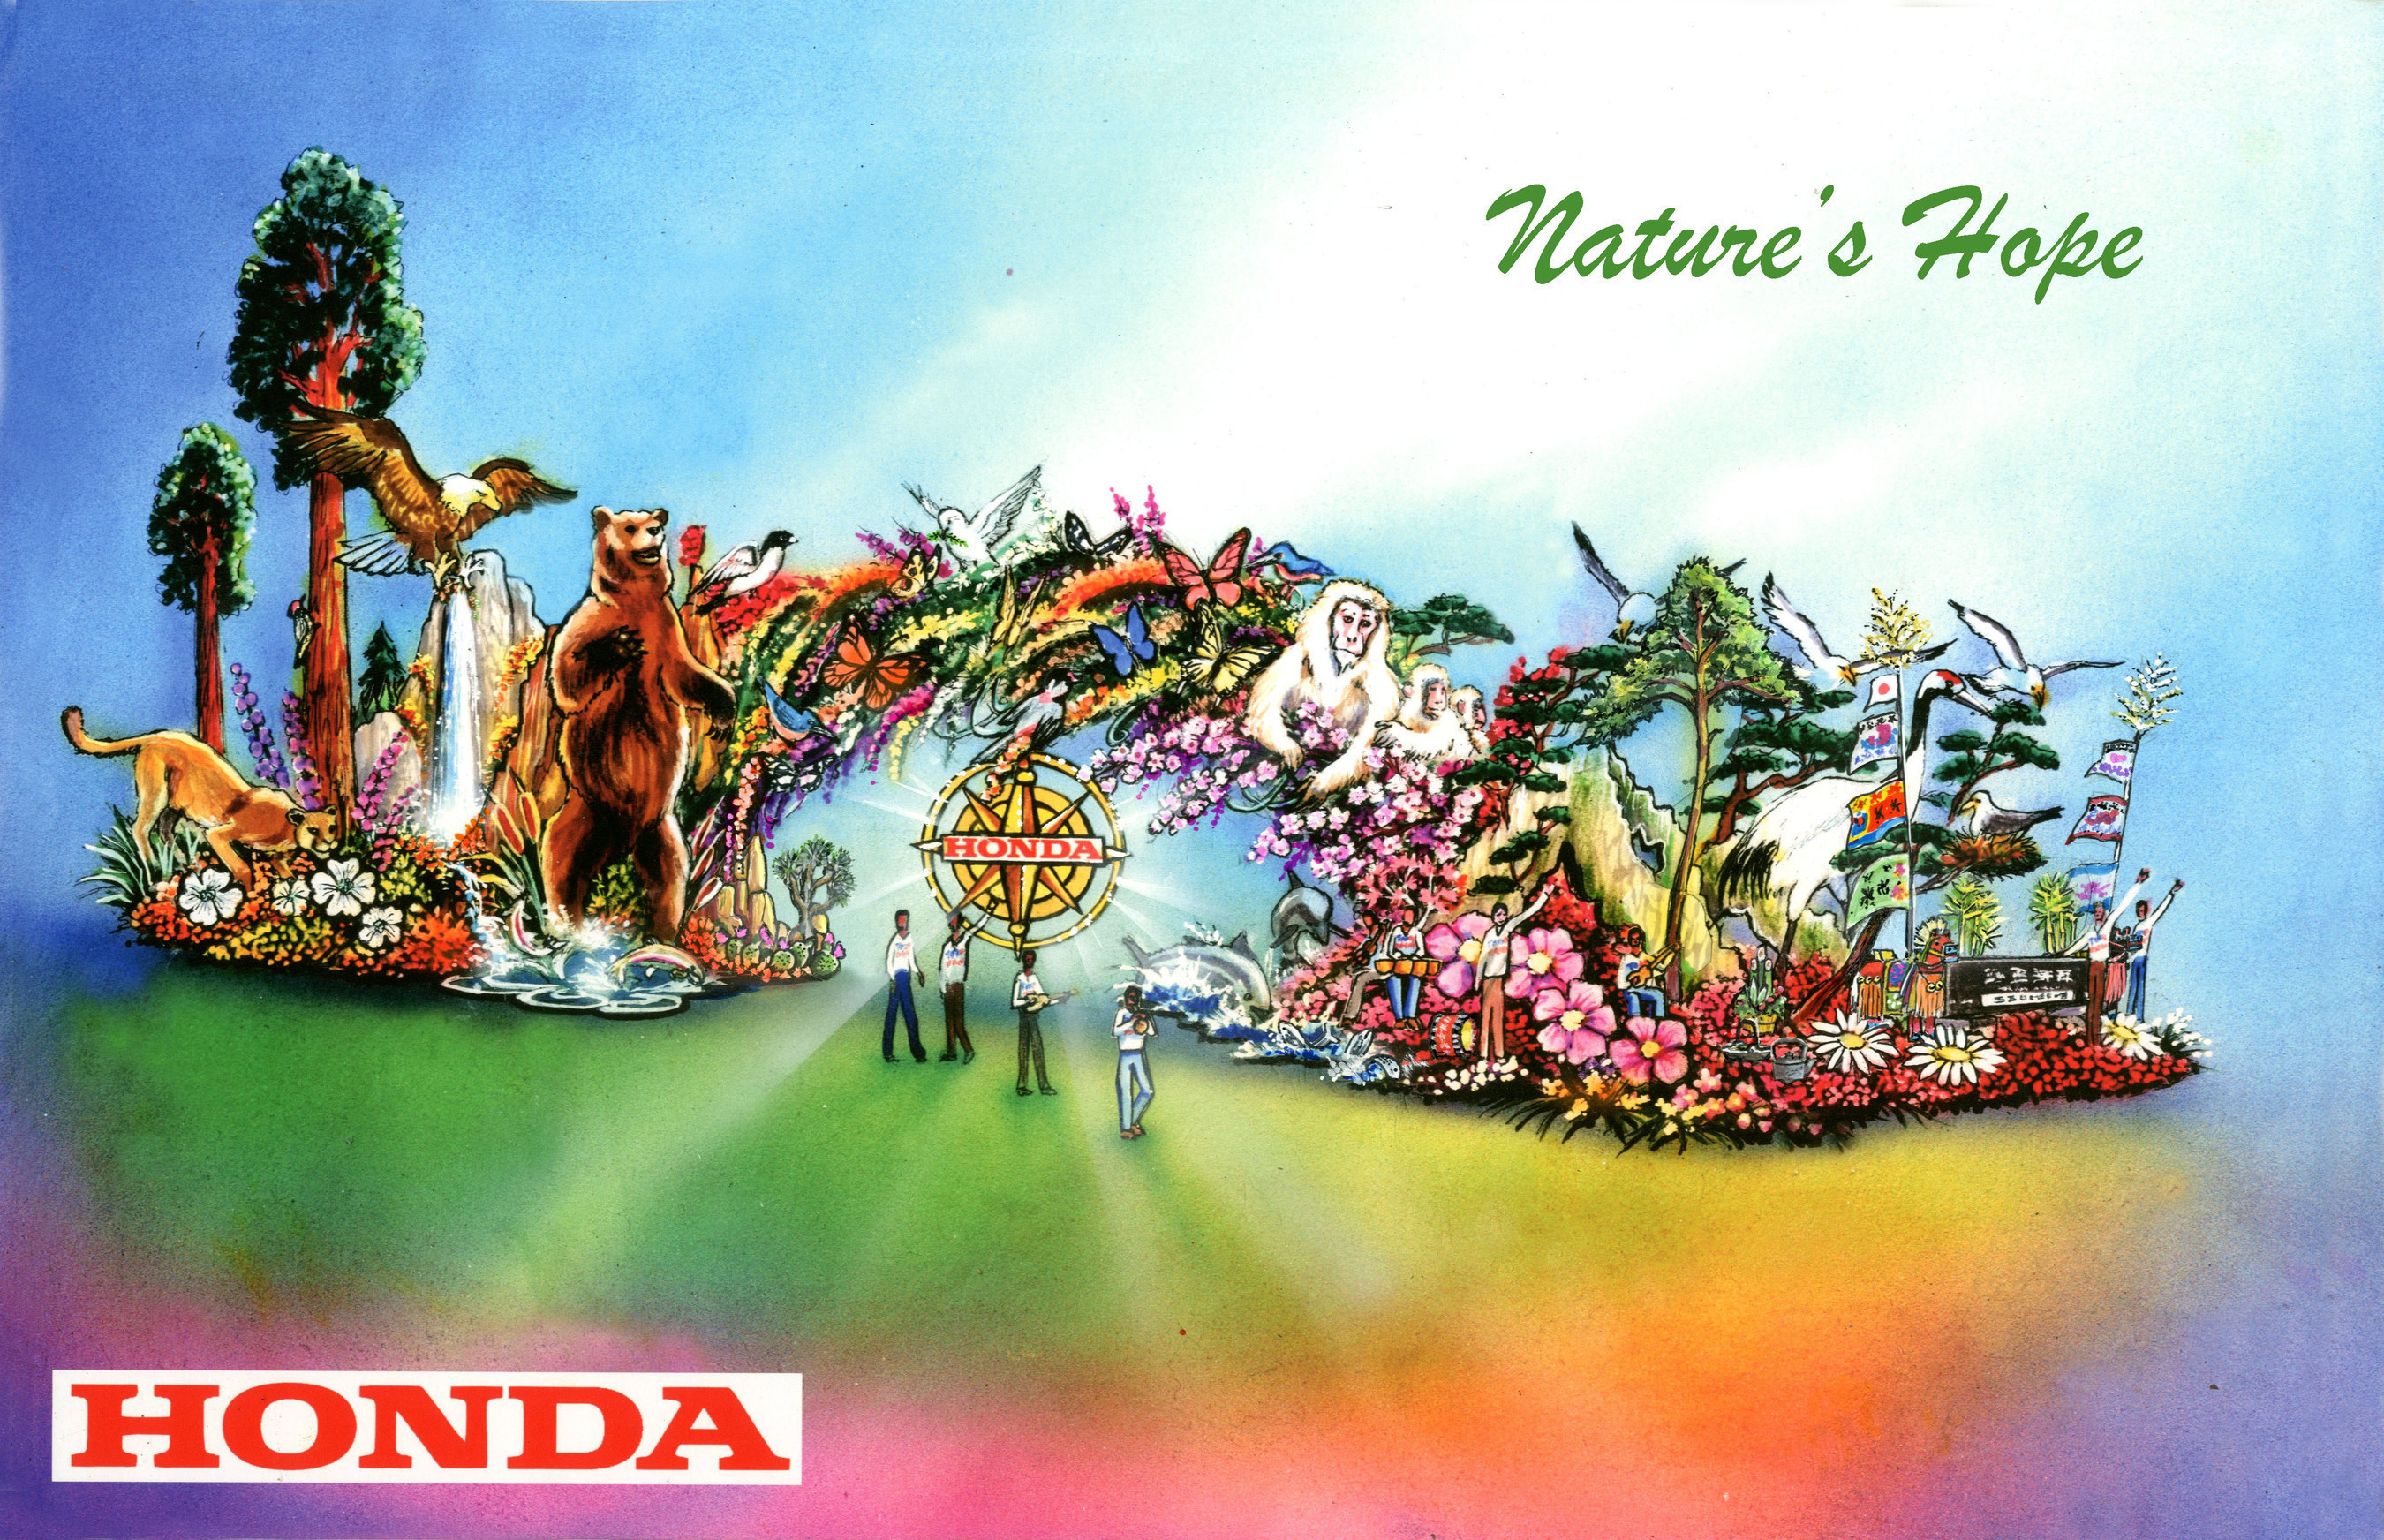 Honda's 'Nature's Hope' Float to Lead 2016 Rose Parade', Celebrate Majestic Beauty of National Parks